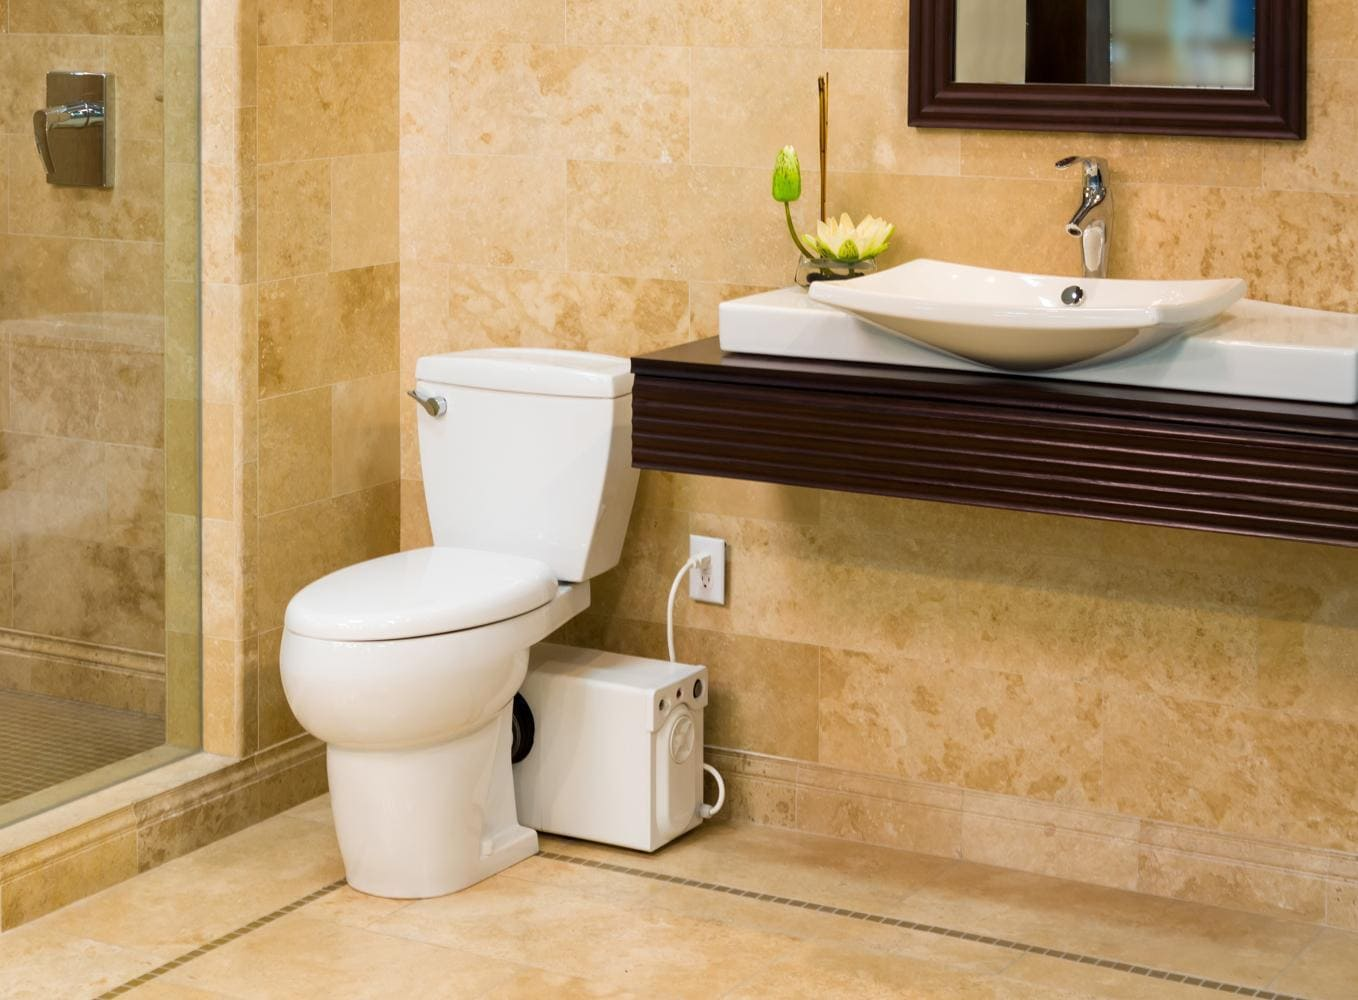 5 Macerating (Upflush) Toilets - (Reviews & Buying Guide